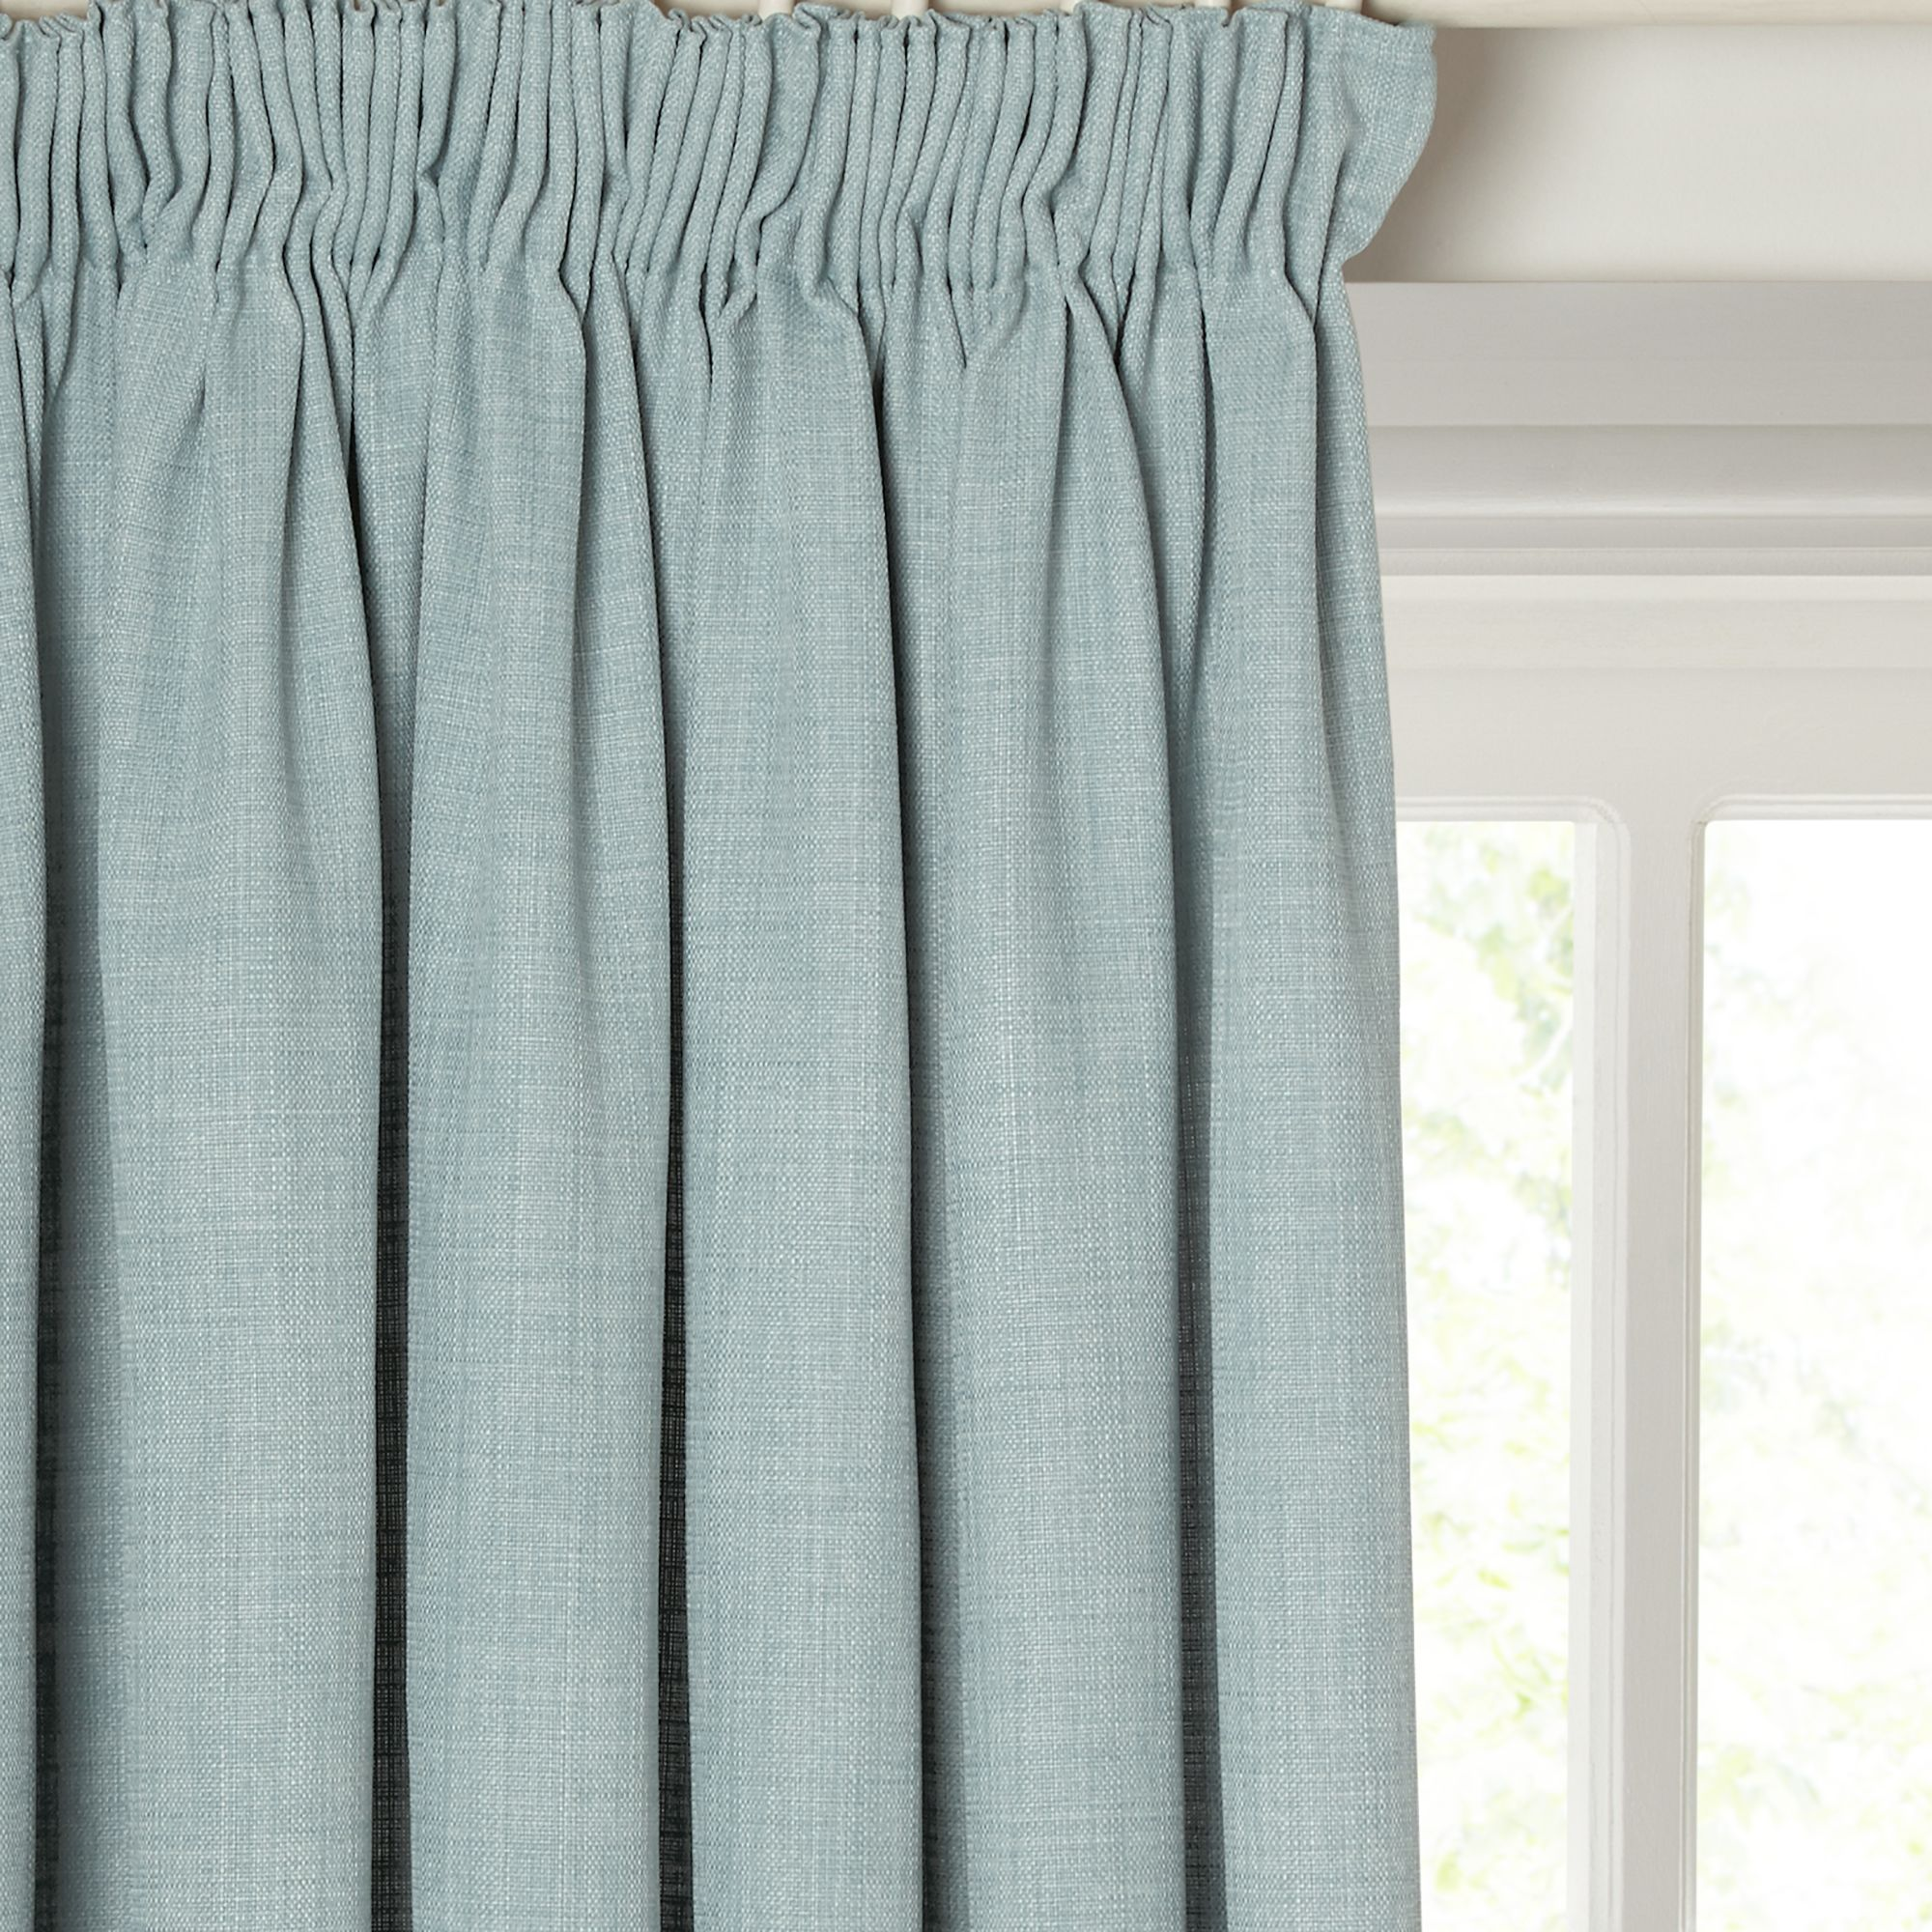 Spotlight Eyelet Curtains Pencil Pleat Blockout Curtains Australia Nice Houzz